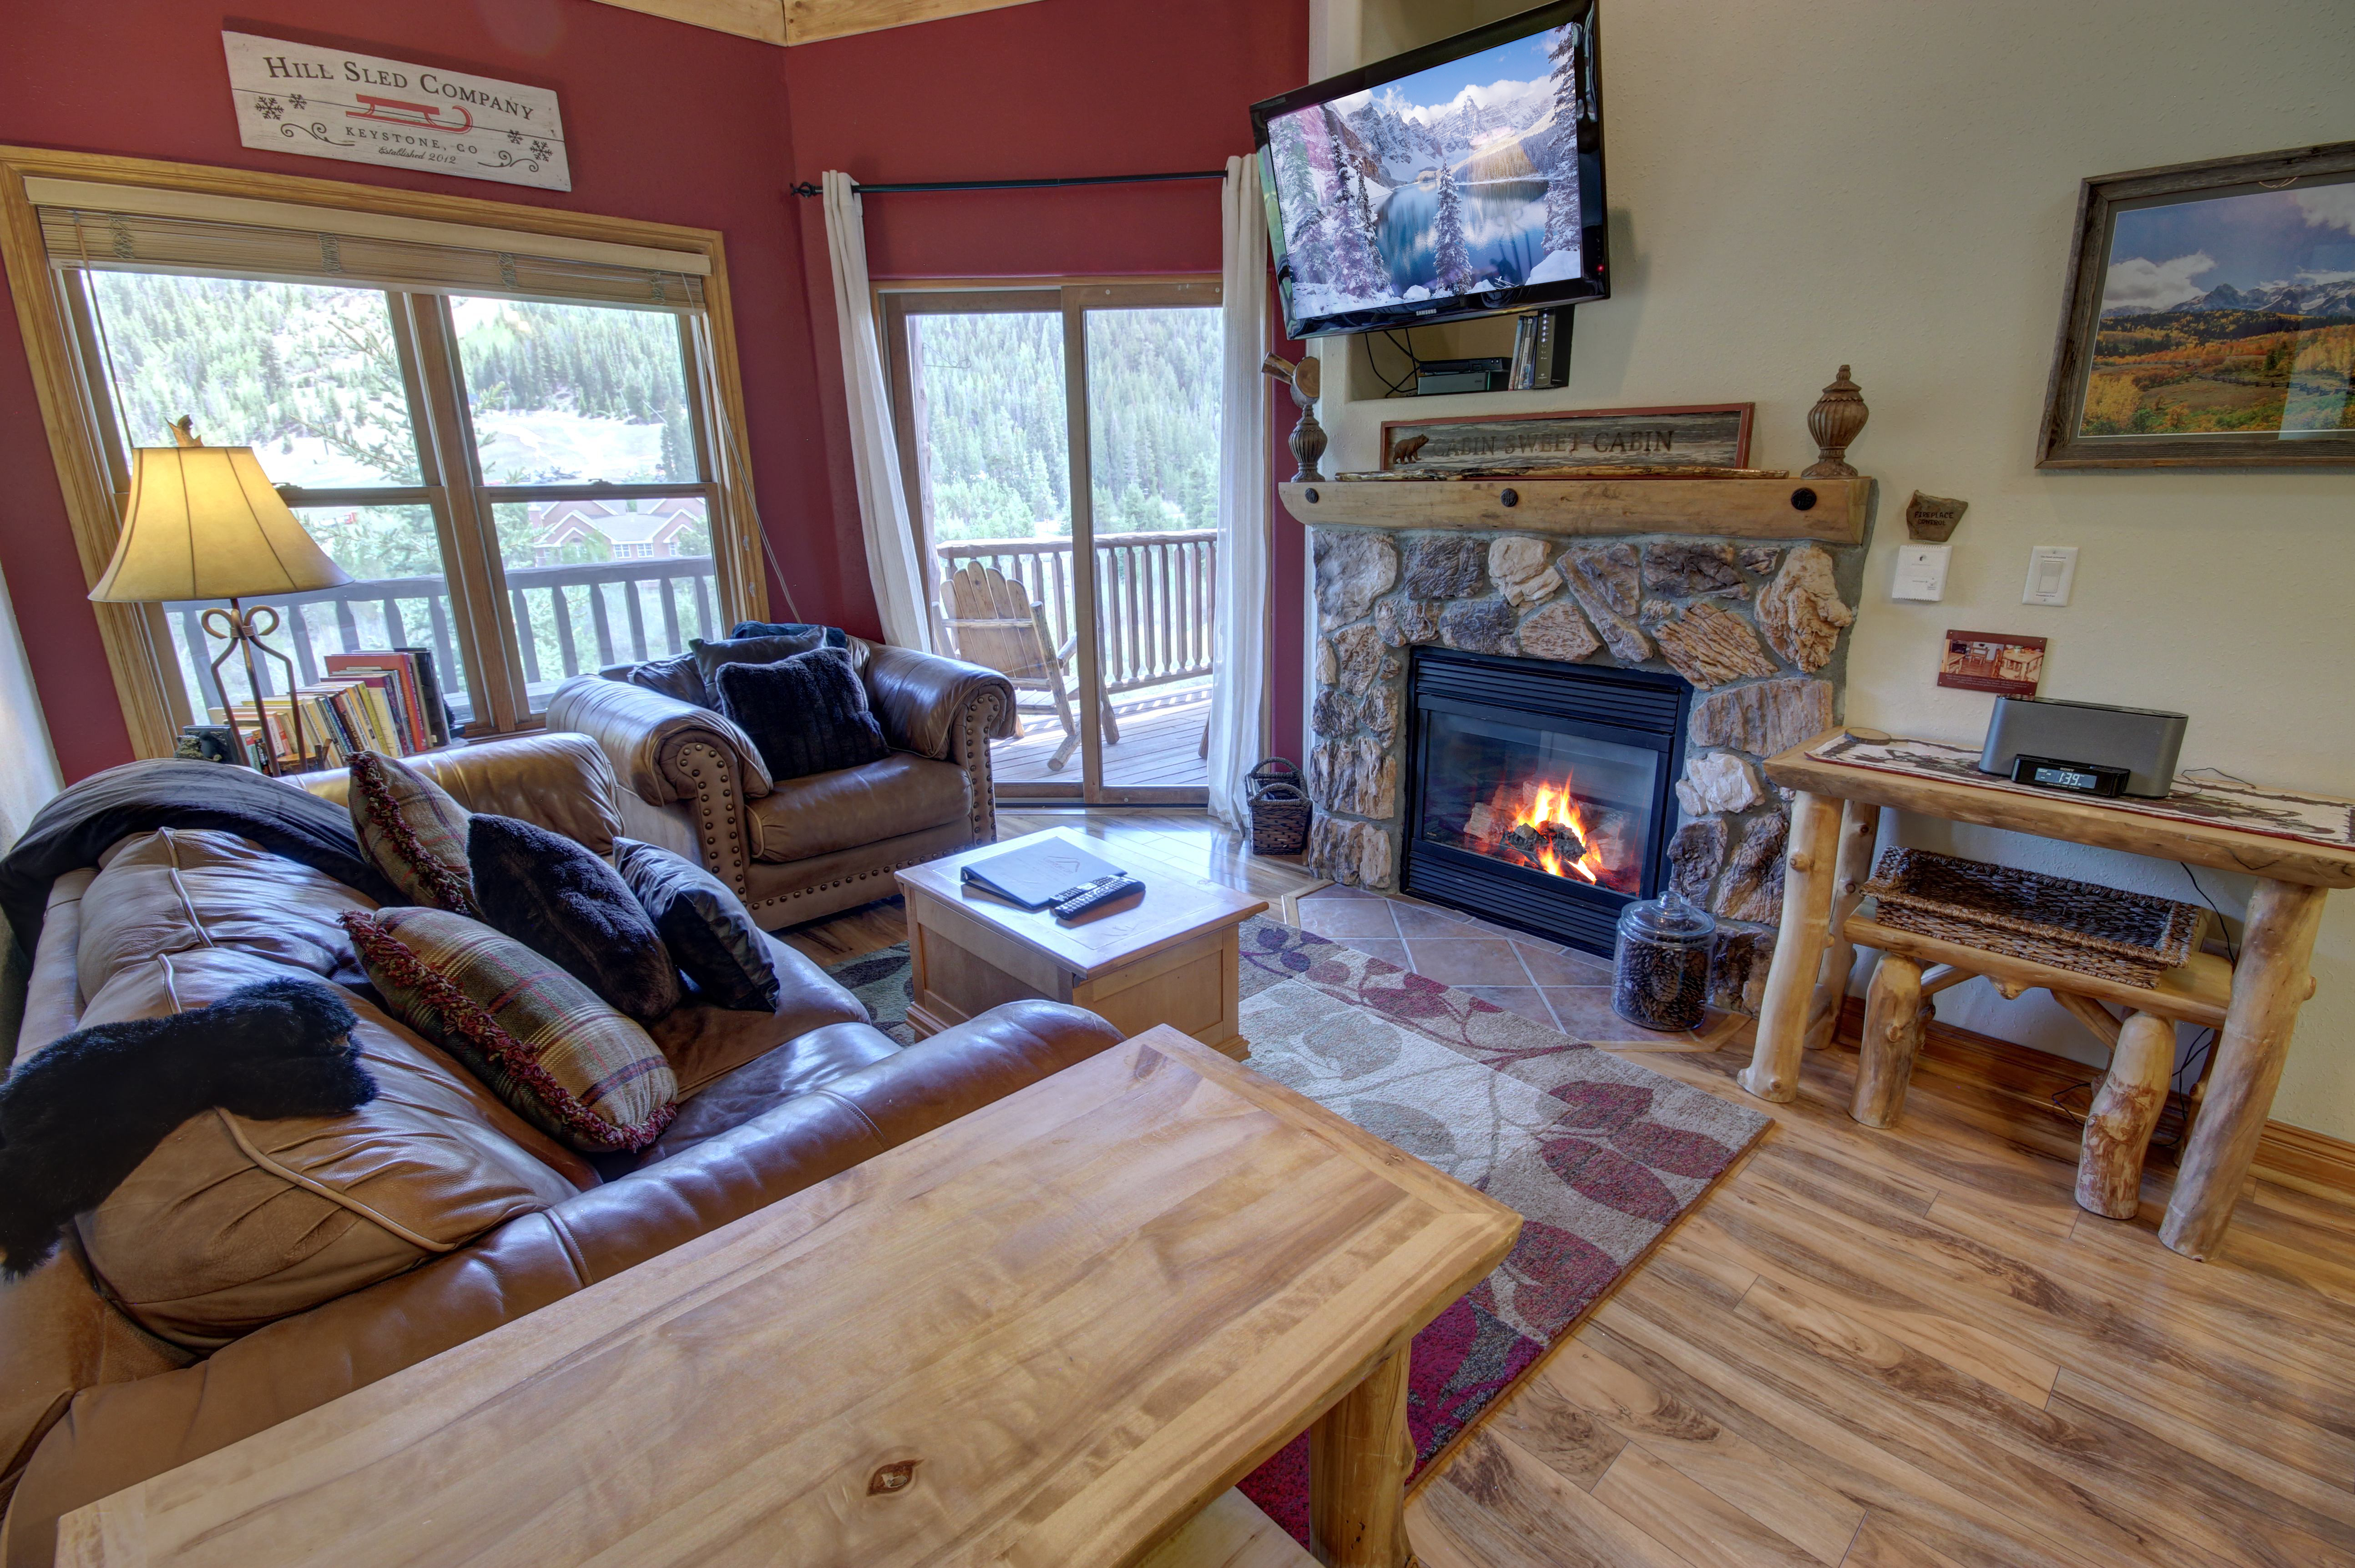 Living room with cozy fireplace and relaxing flatscreen TV